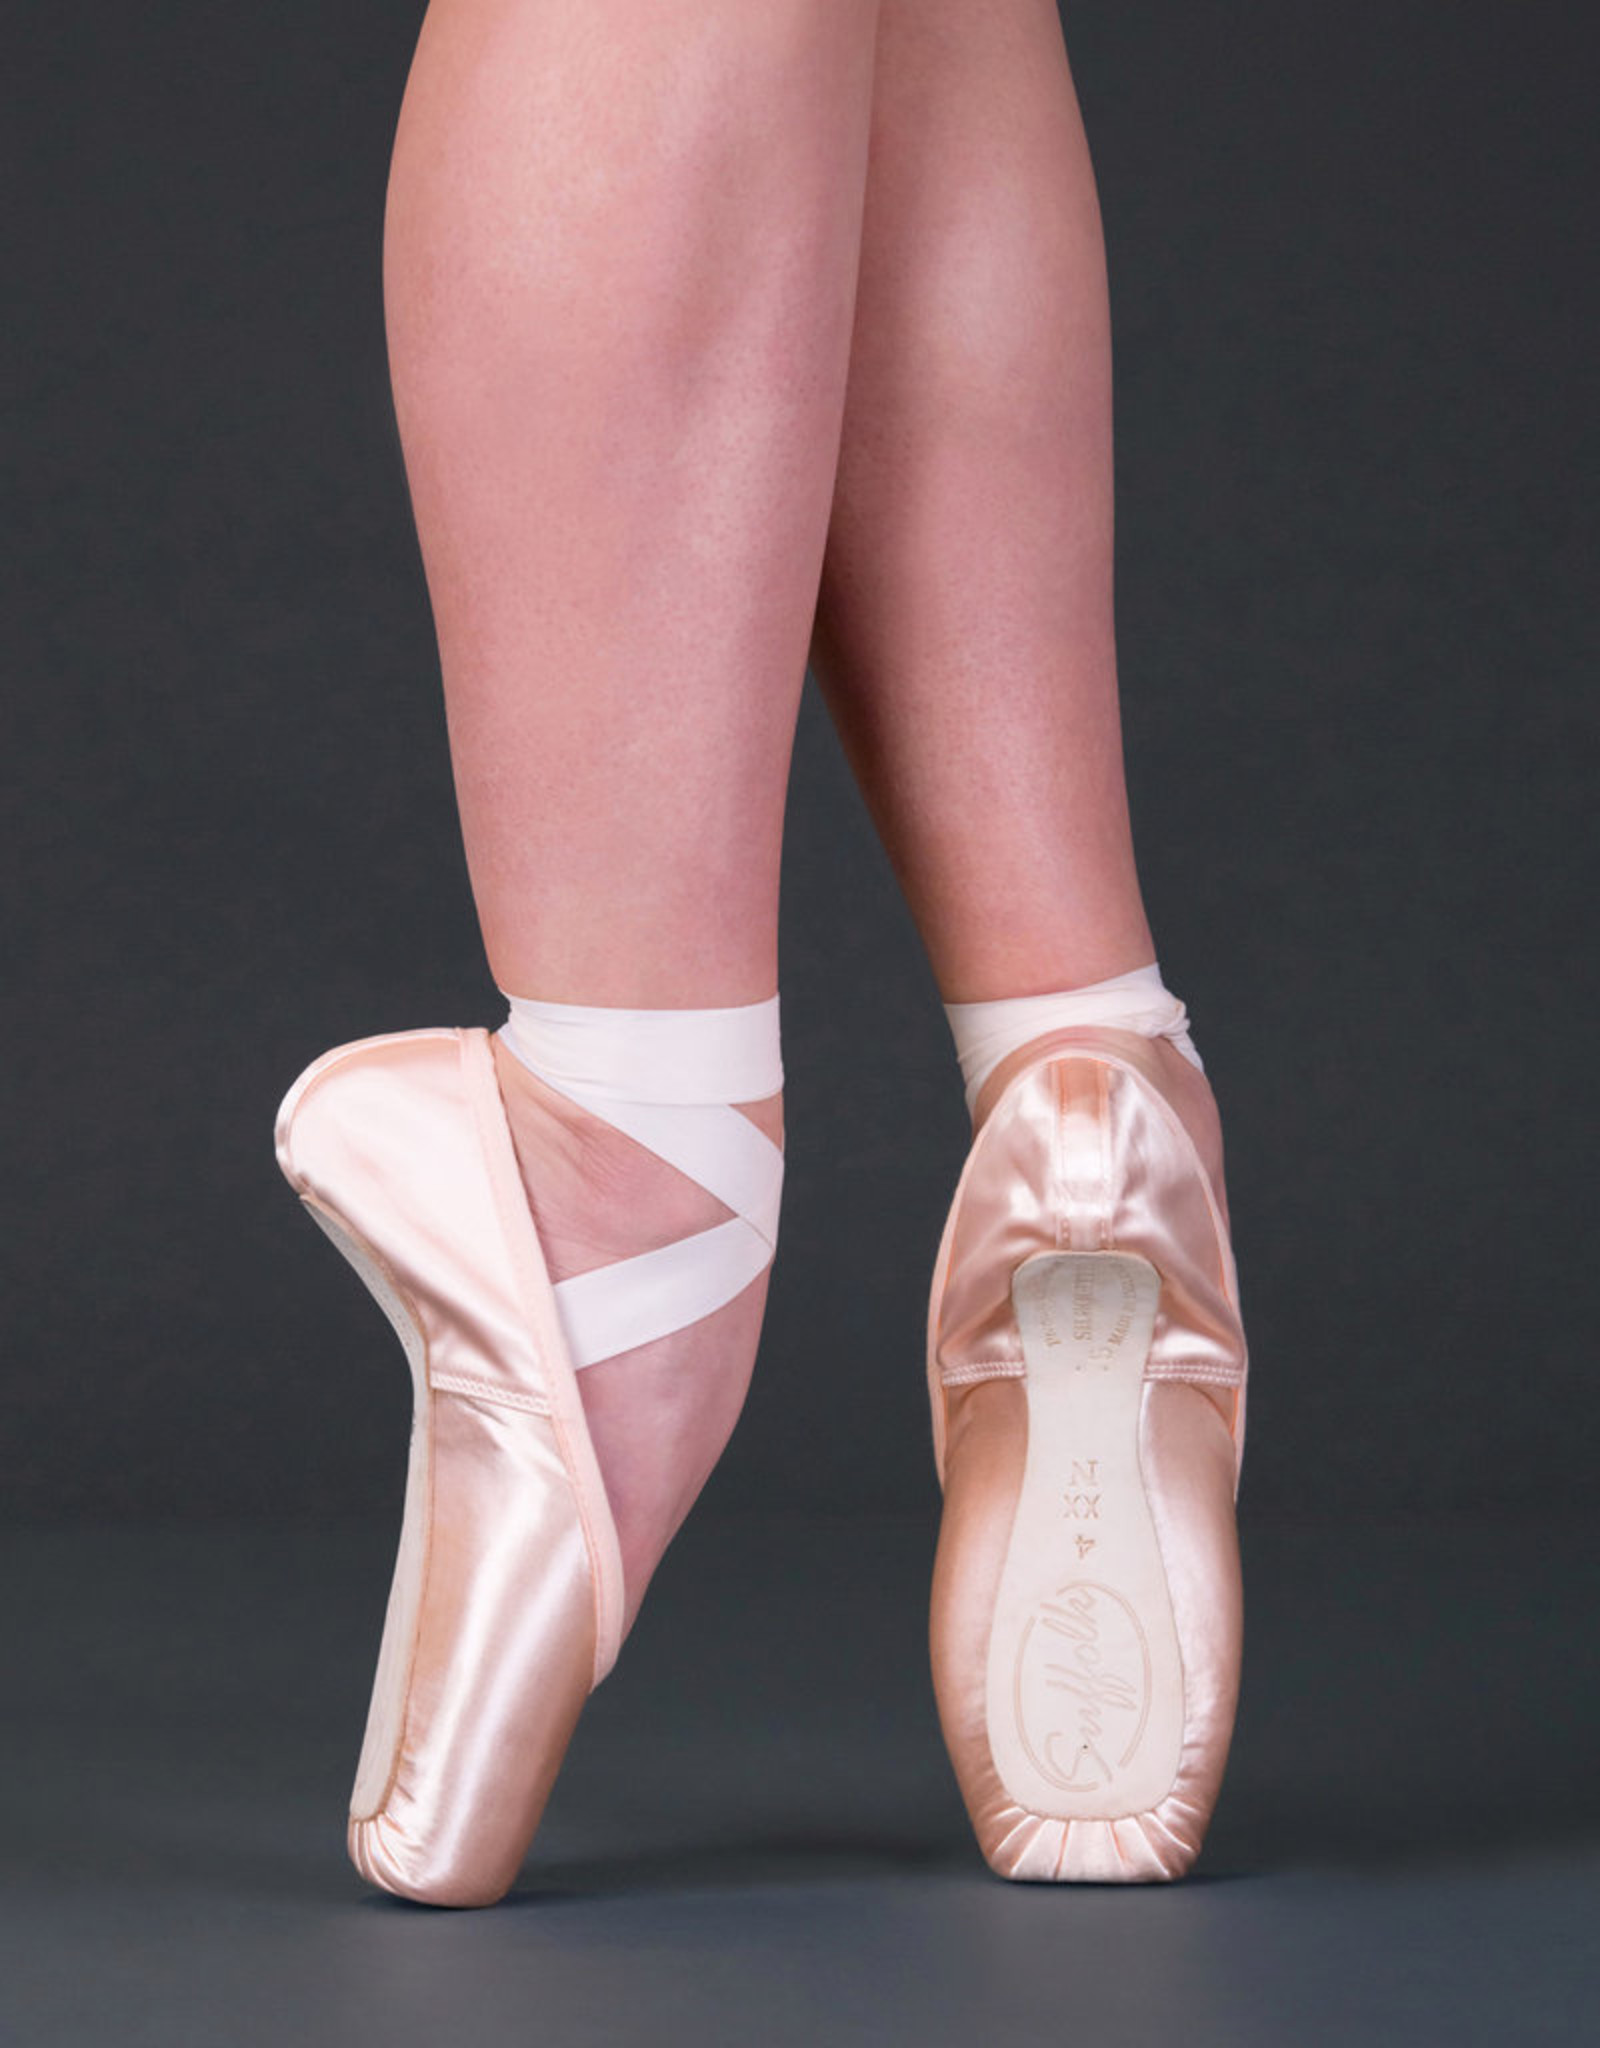 SUFFOLK SUFFOLK SILHOUETTE POINTE SHOE